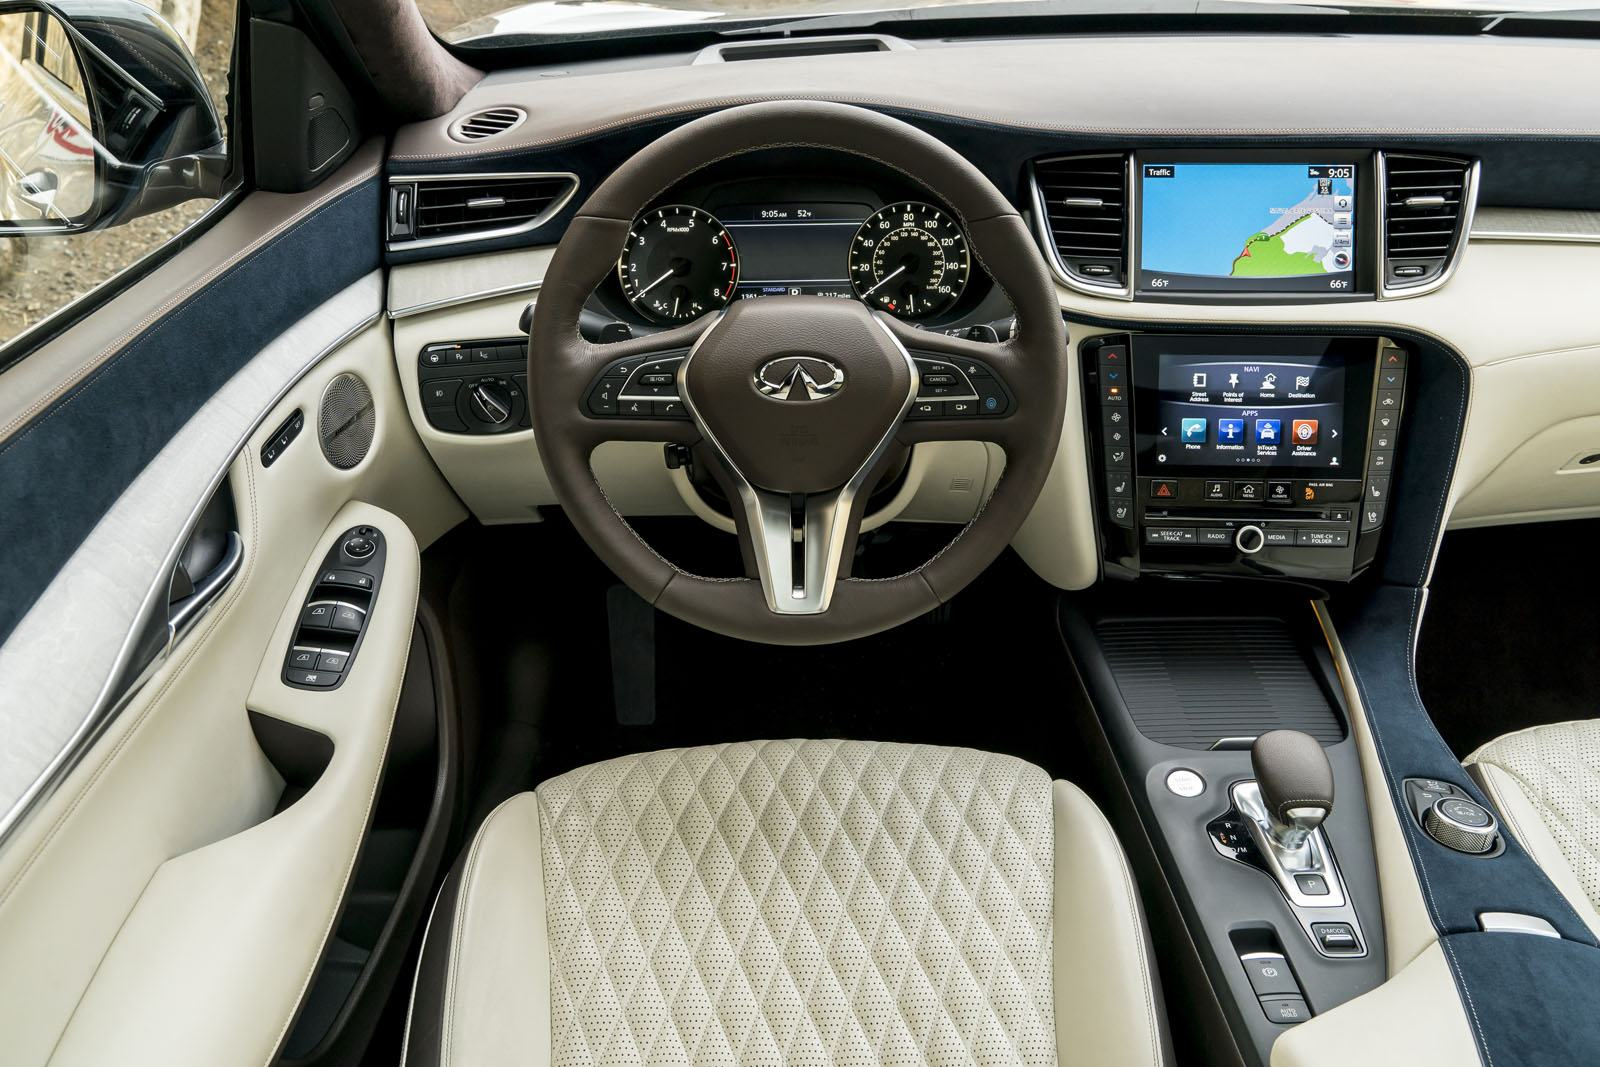 2019 Infiniti QX50 Review and First Drive - AutoGuide.com